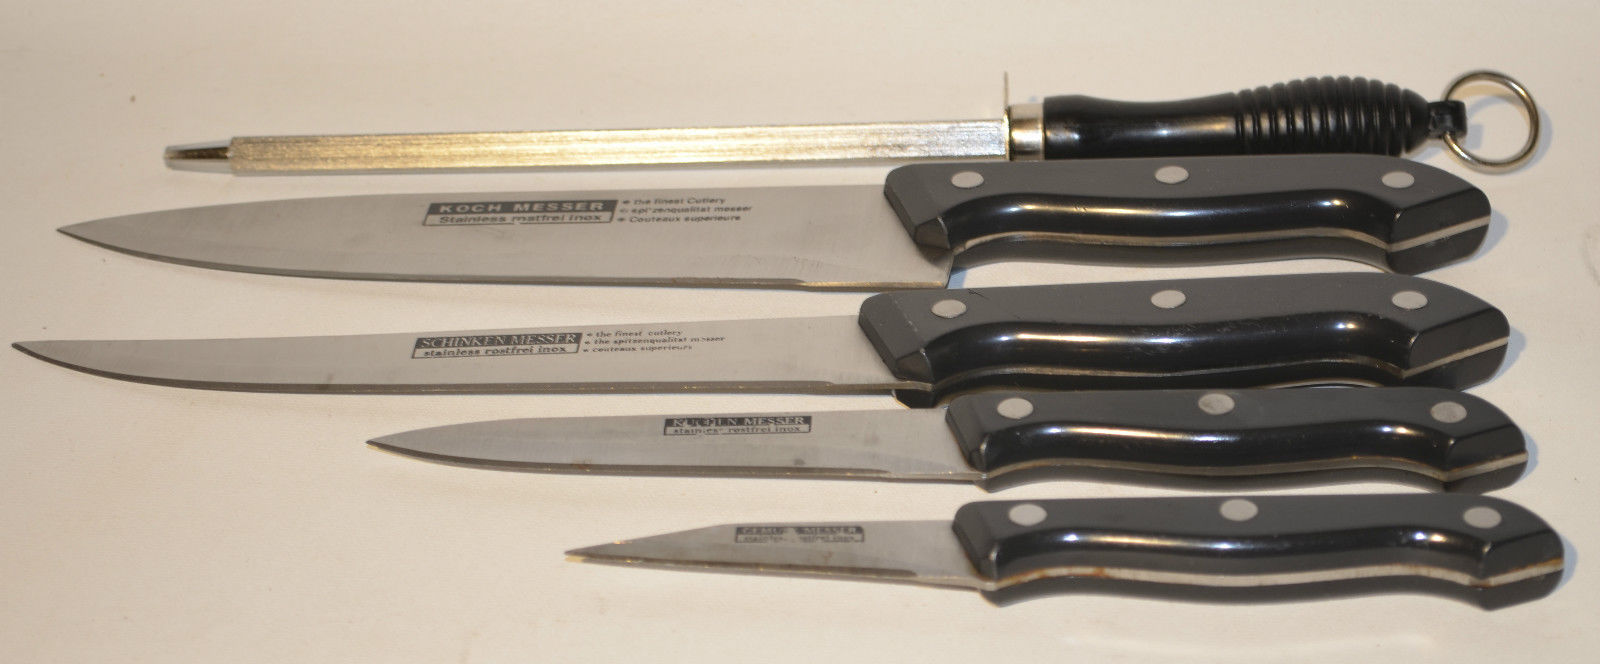 set of 5 schinken koch messer stainless kitchen knife kitchen steak knives. Black Bedroom Furniture Sets. Home Design Ideas